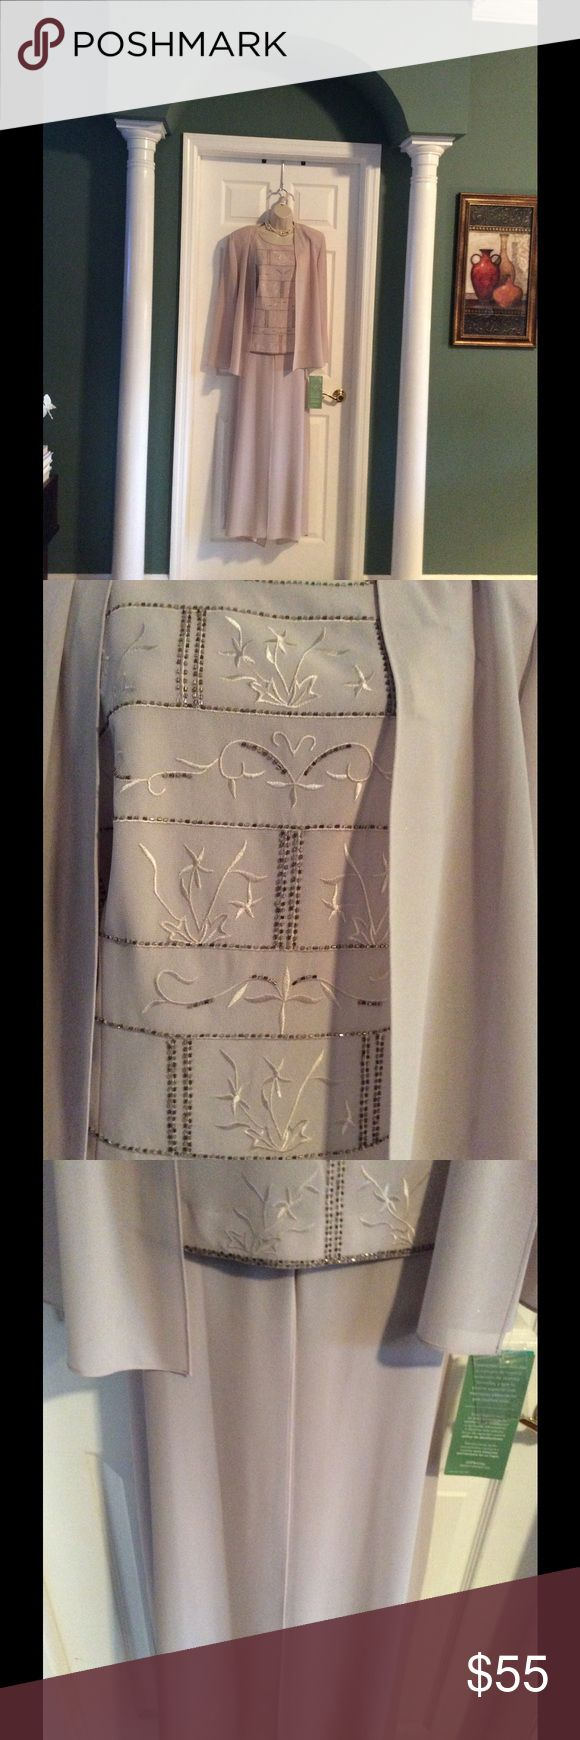 💋FORMAL 3 PIECE SUIT💋 3 Piece suit includes embroidered and beaded tank, jacket, and pants. Beautifully made the embroidery is exquisite with just the right amount of beading. Would be a lovely Mother of the Bride outfit or for any dressy occasion. Beautiful soft taupe color. R M Richards Dresses